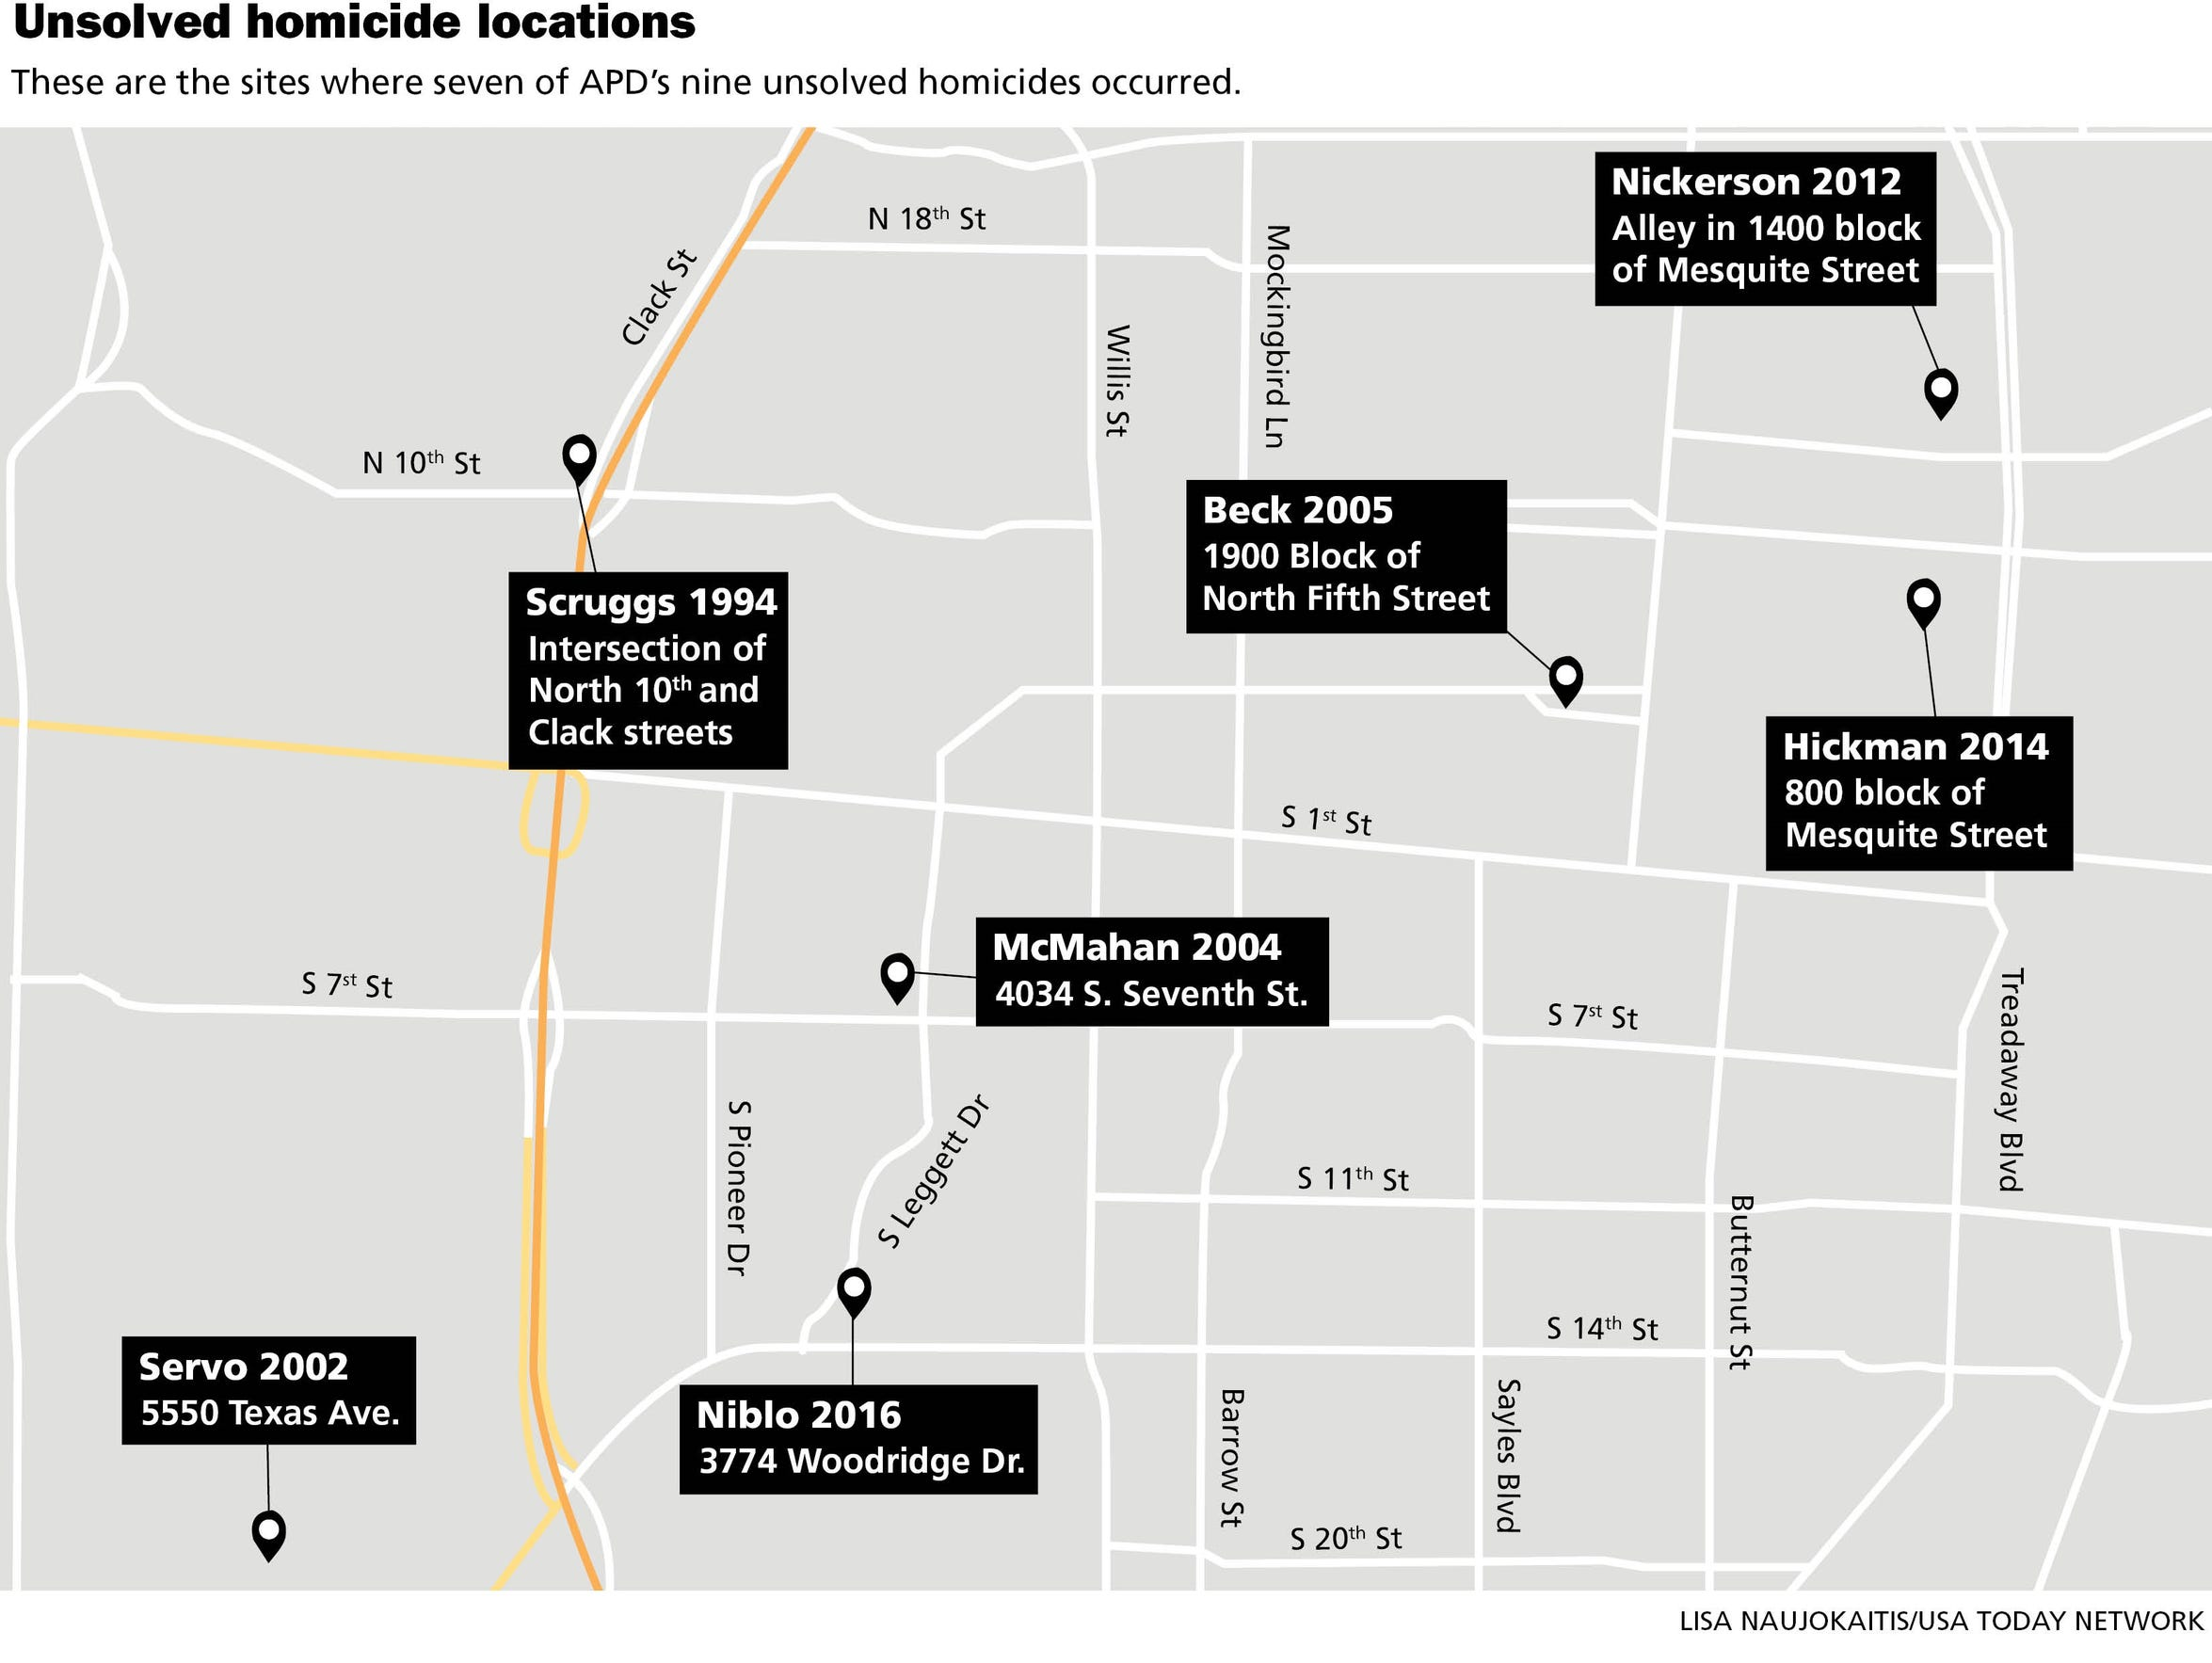 This map shows seven of the nine sites where unsolved